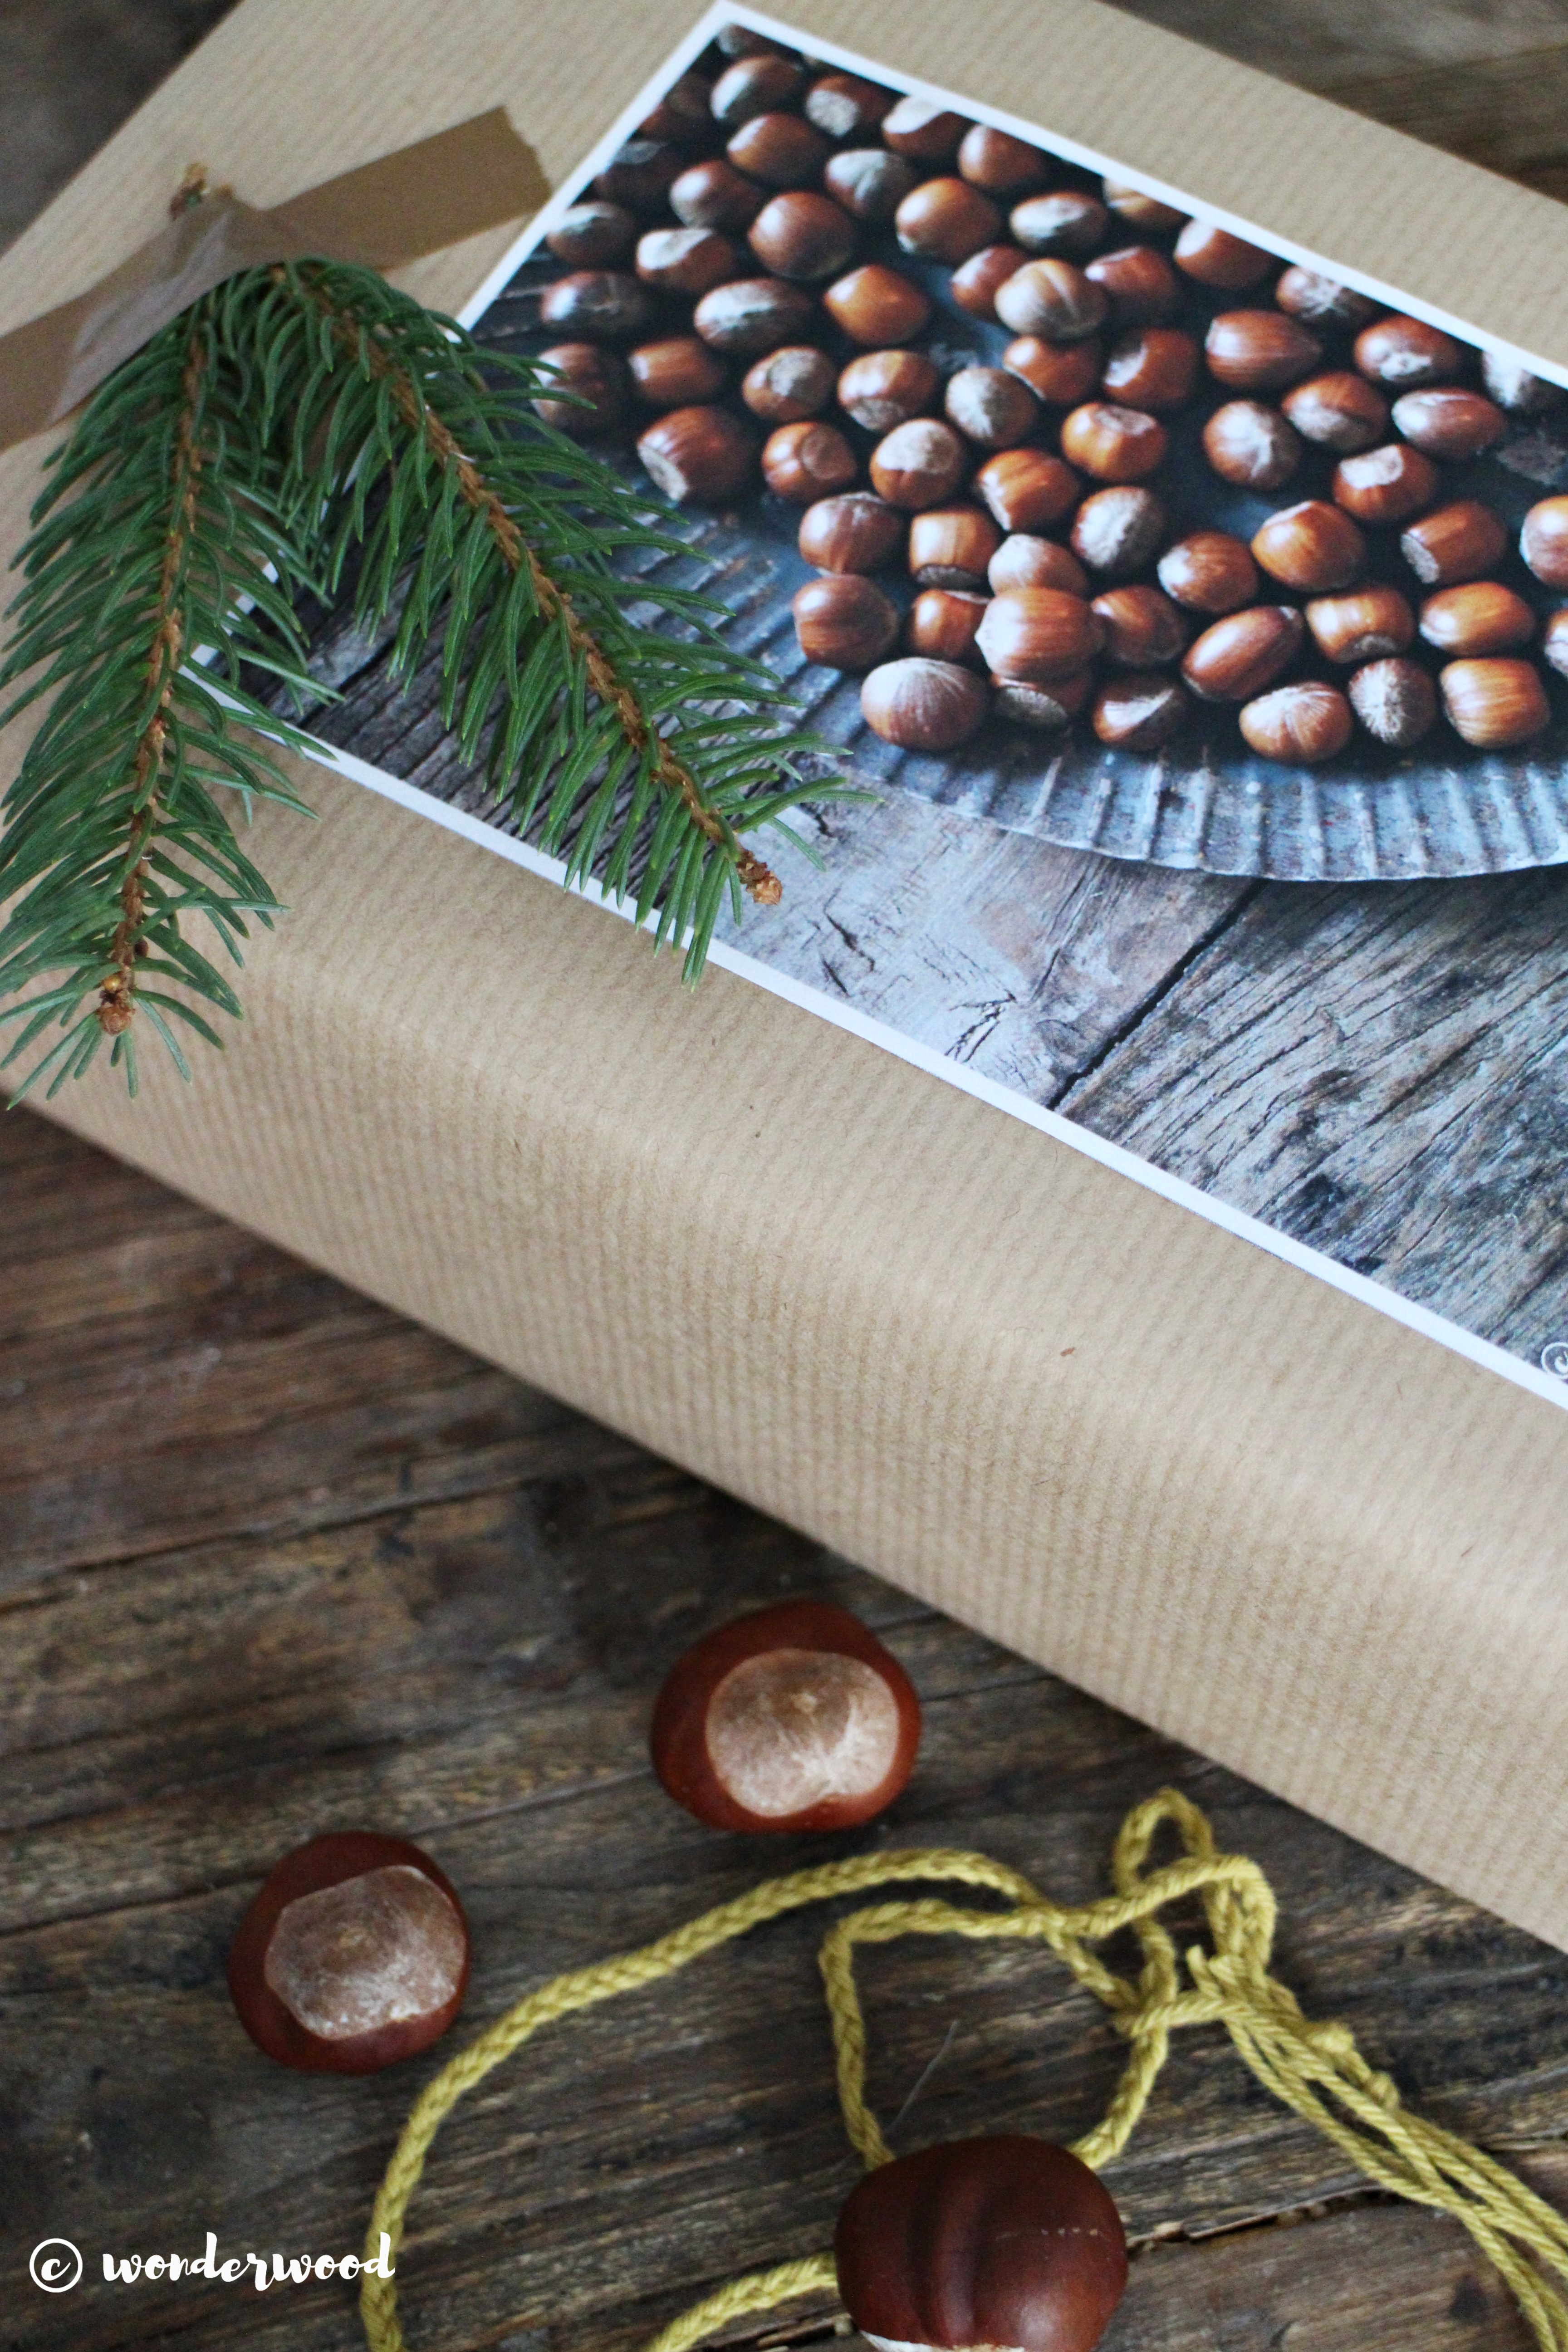 diy innpakking med foto-dekor // diy photo gift wrapping